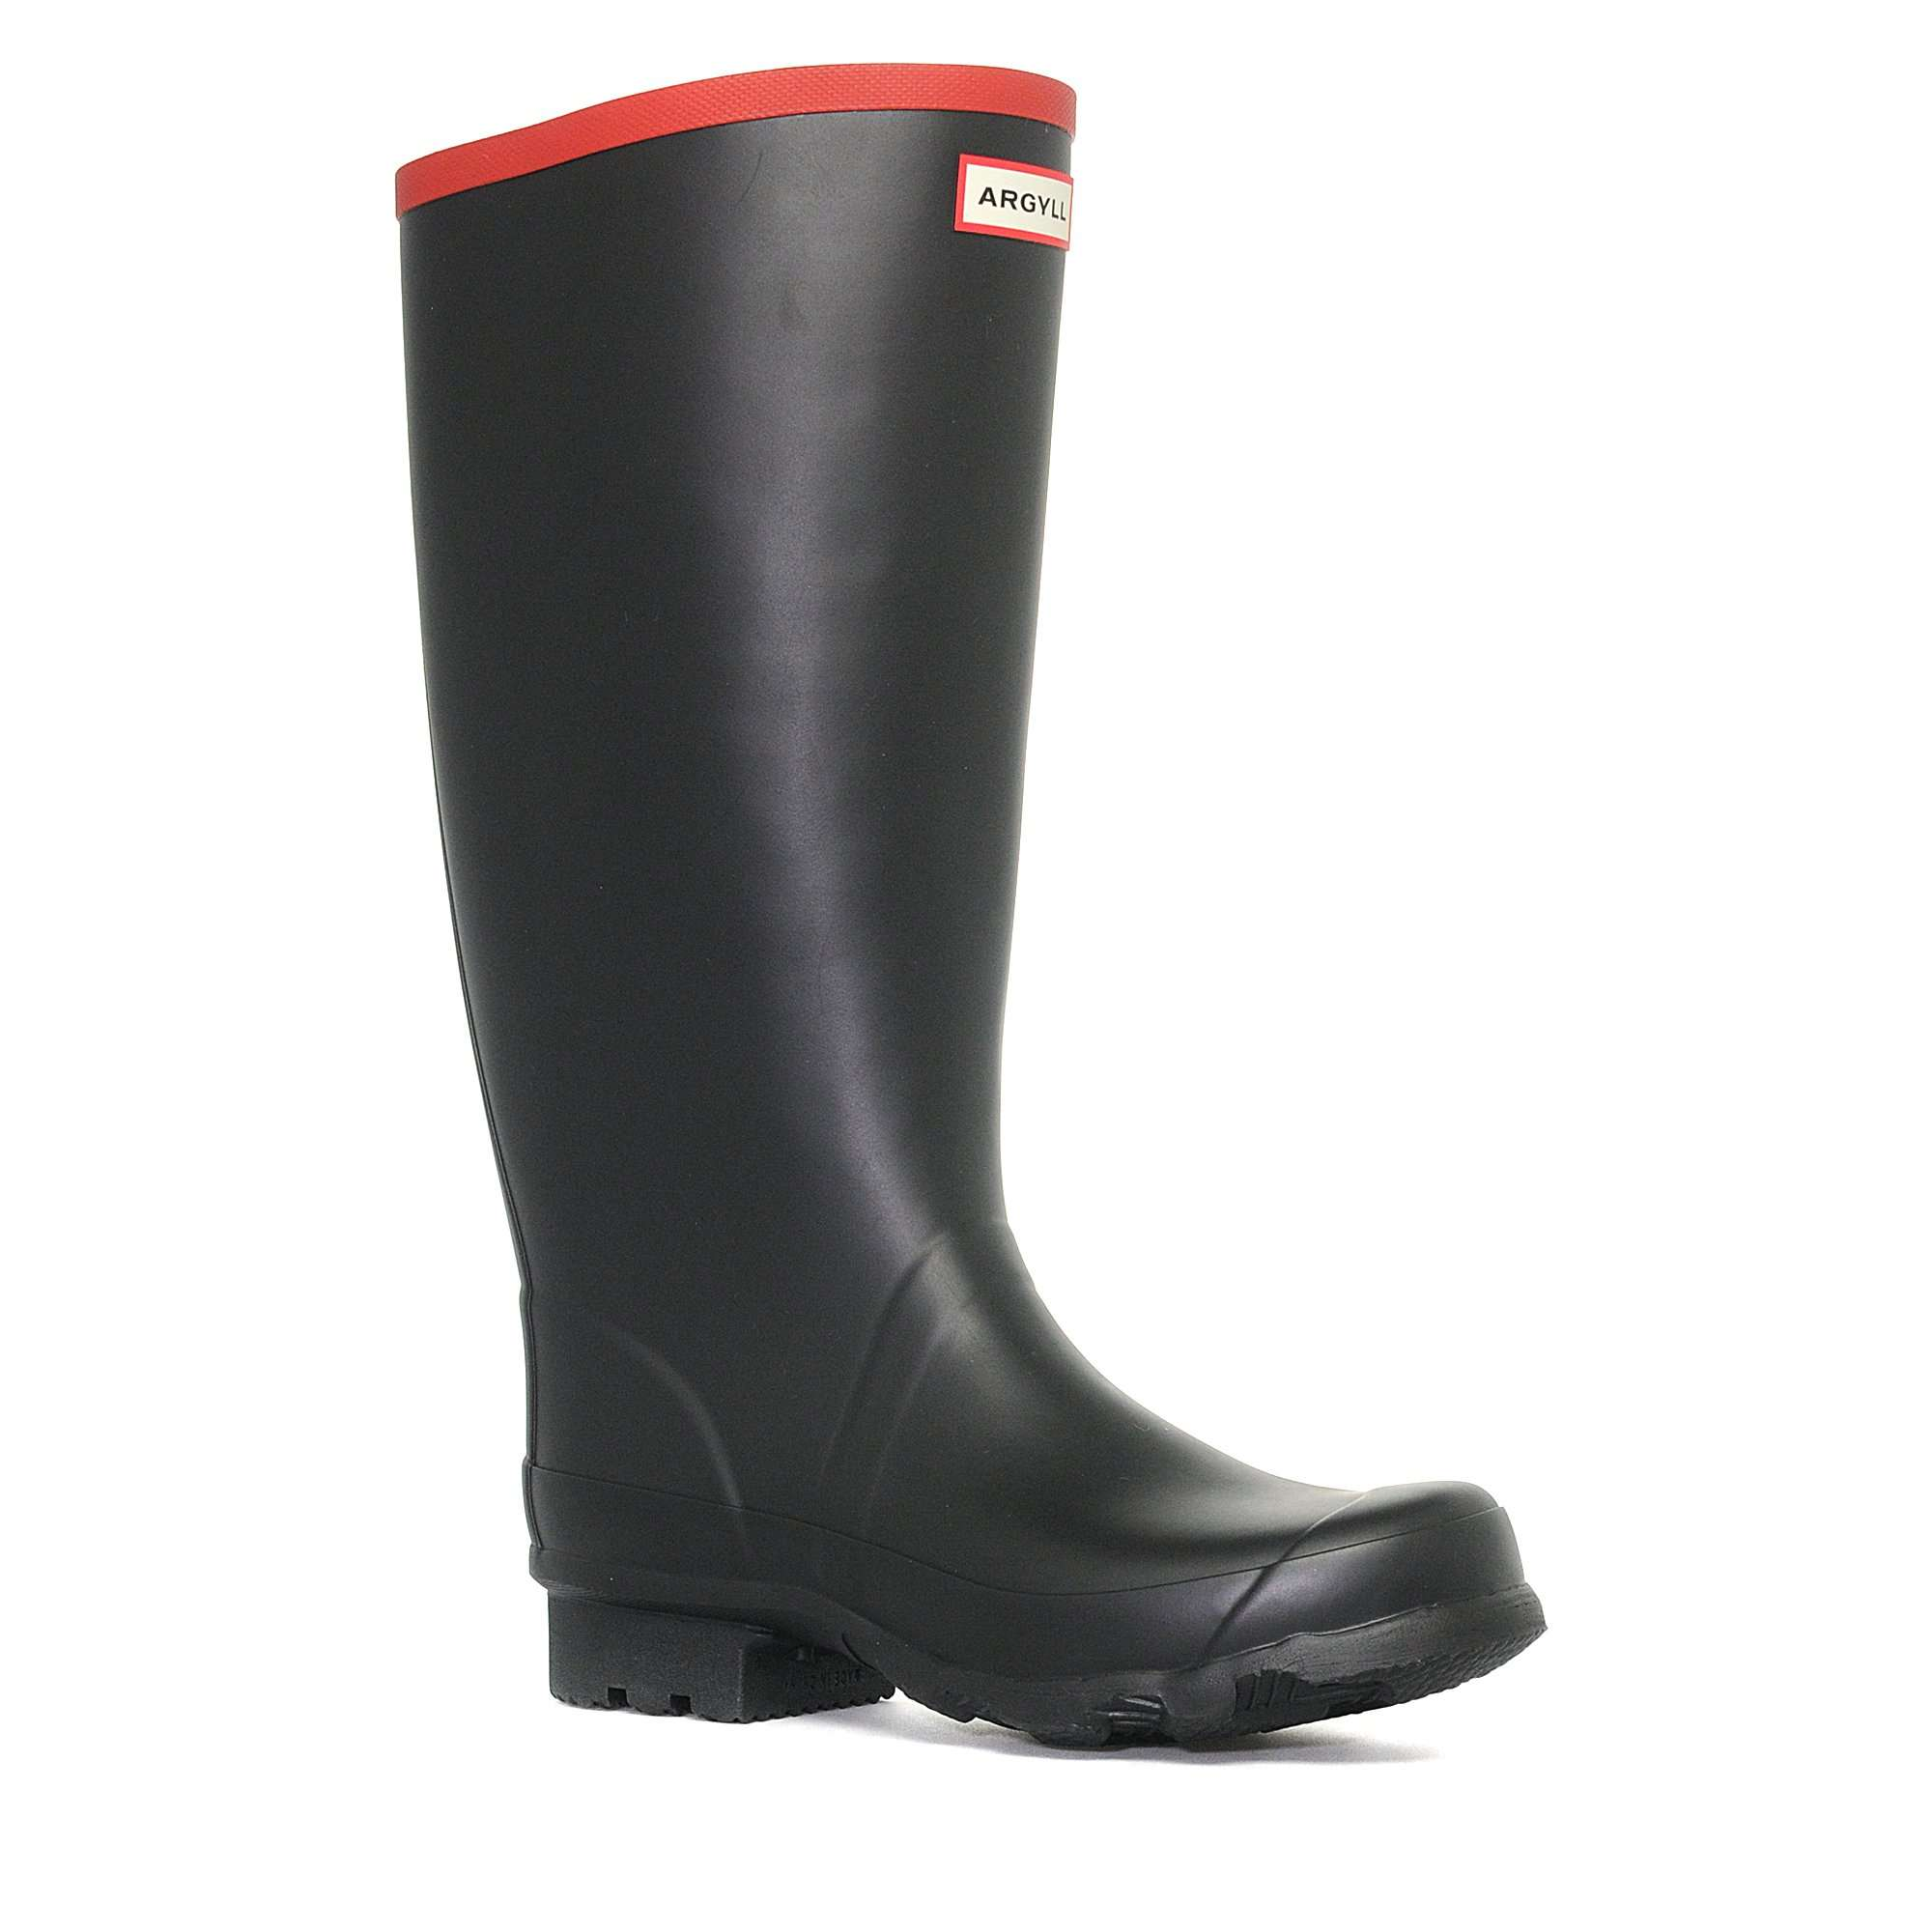 HUNTER Unisex Argyll Full Knee Wellington Boot